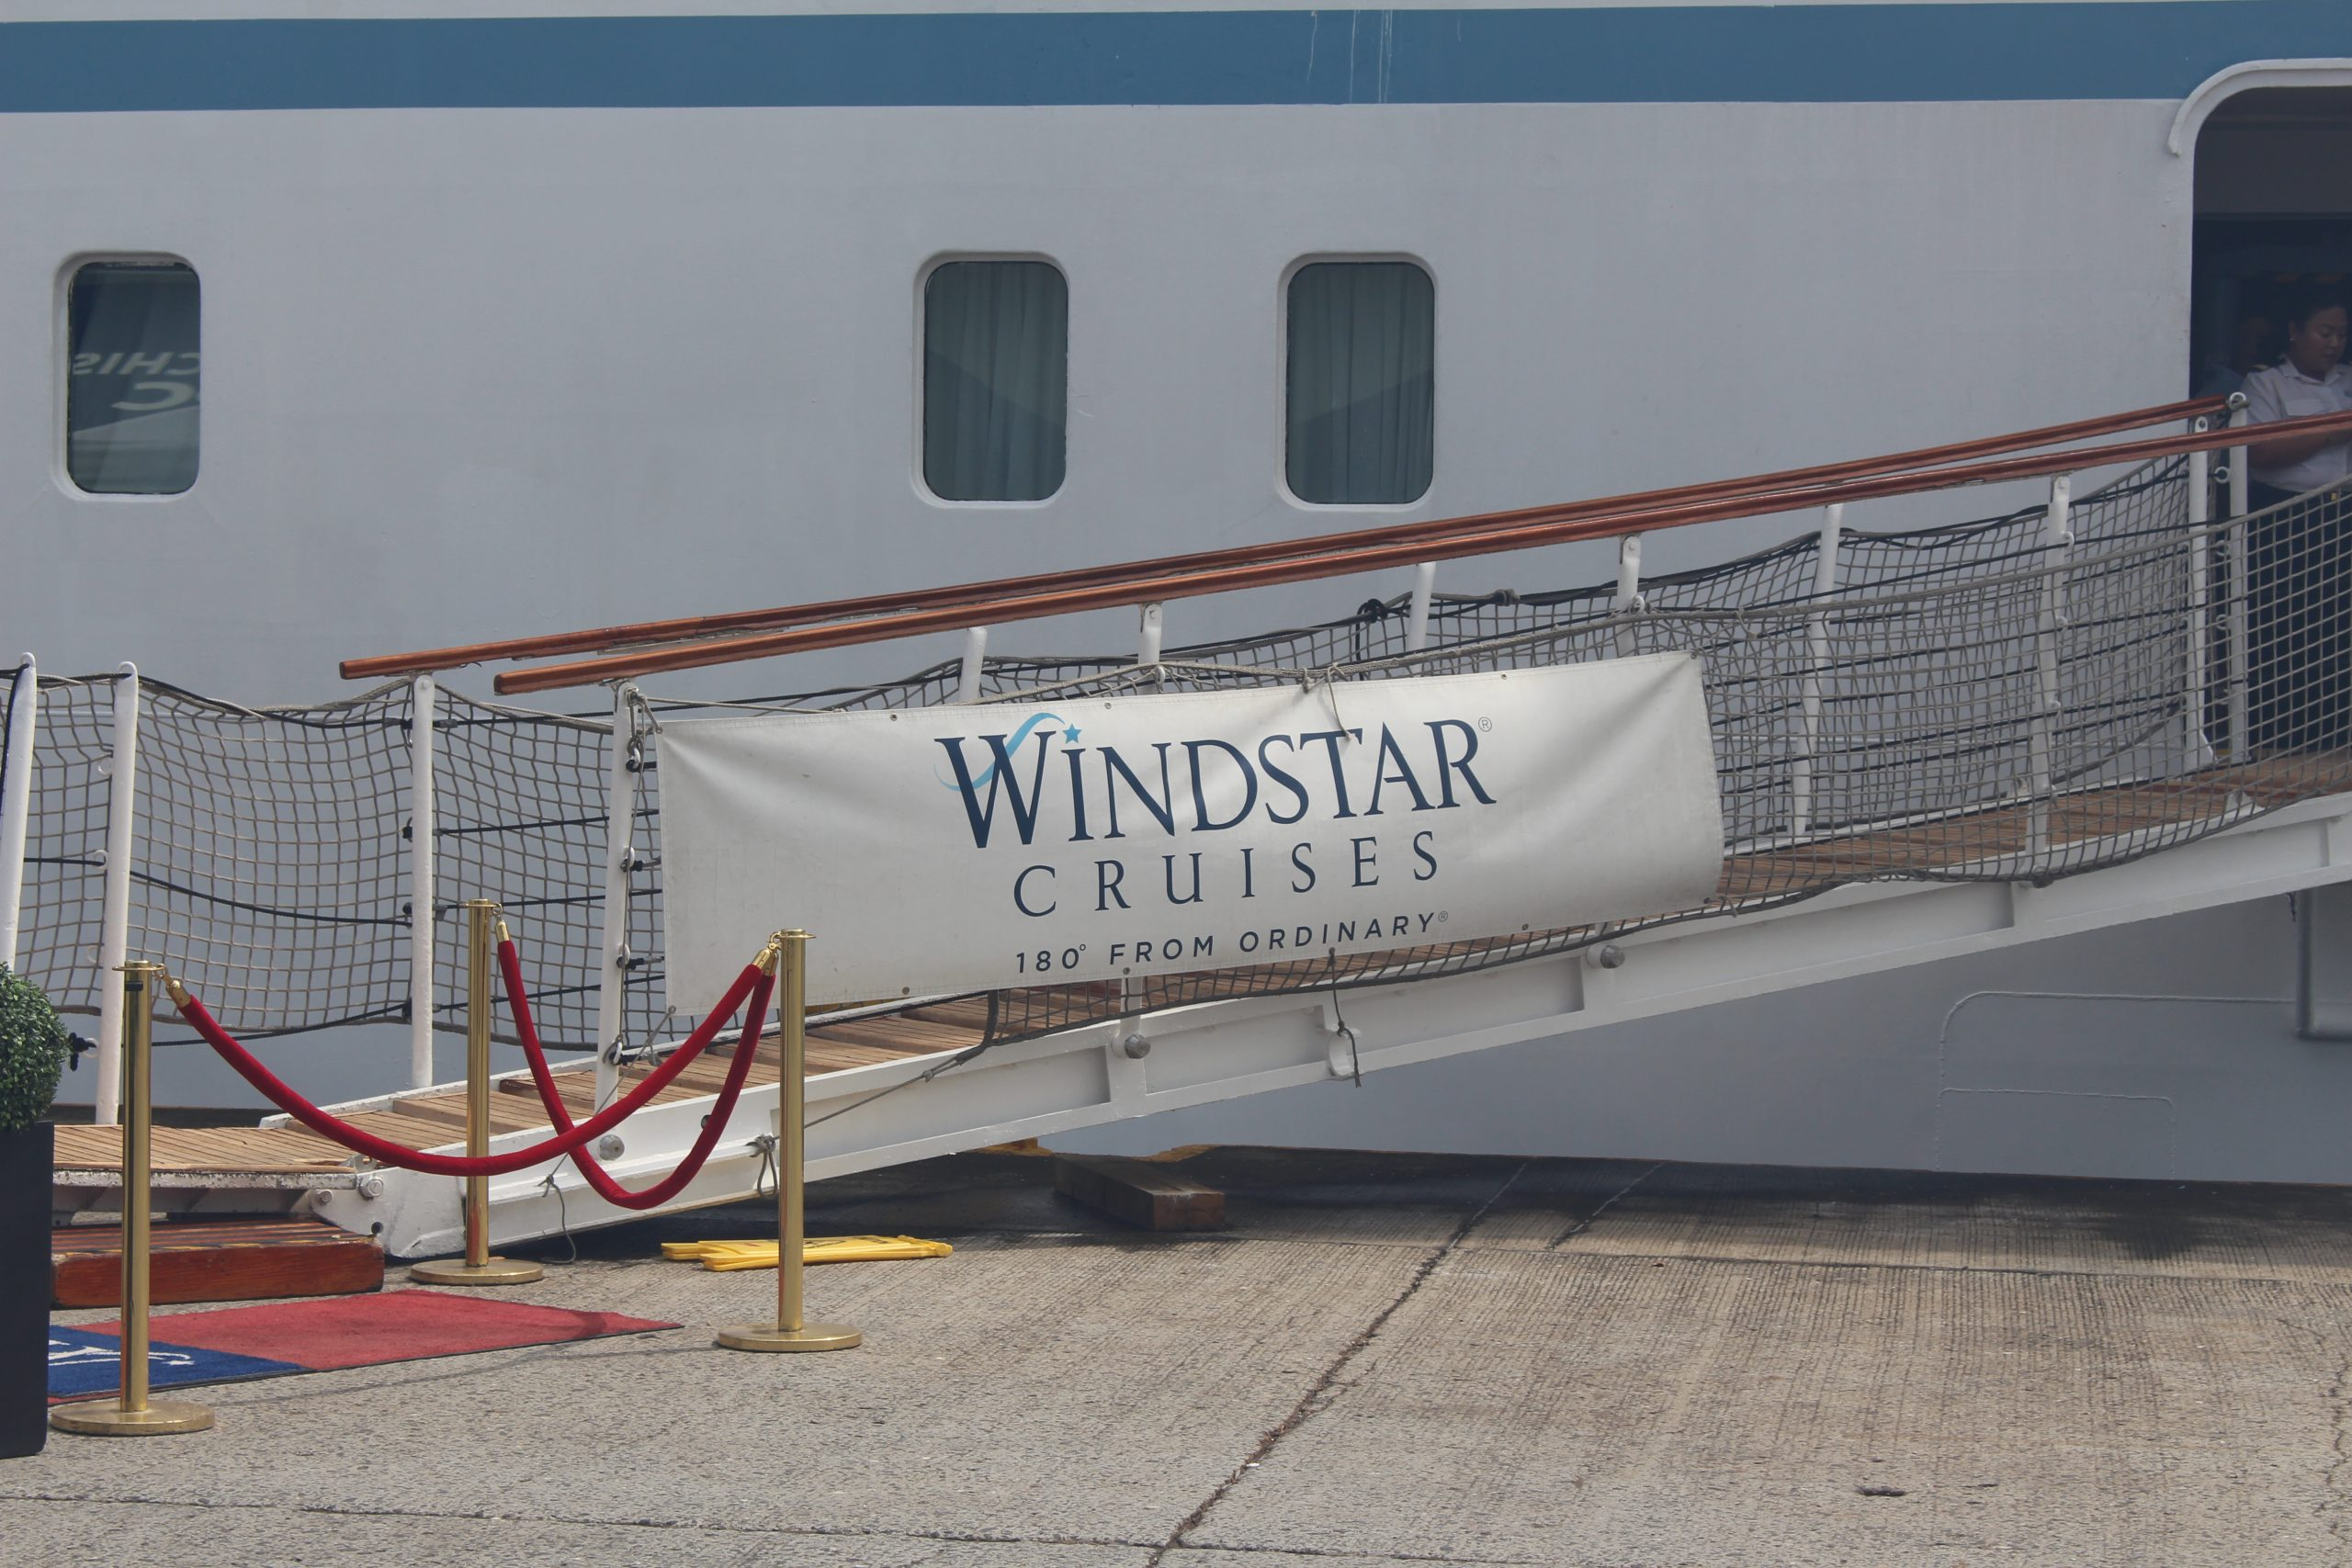 Windstar Cruise-Panama & Costa Rica-Cruise Day 5